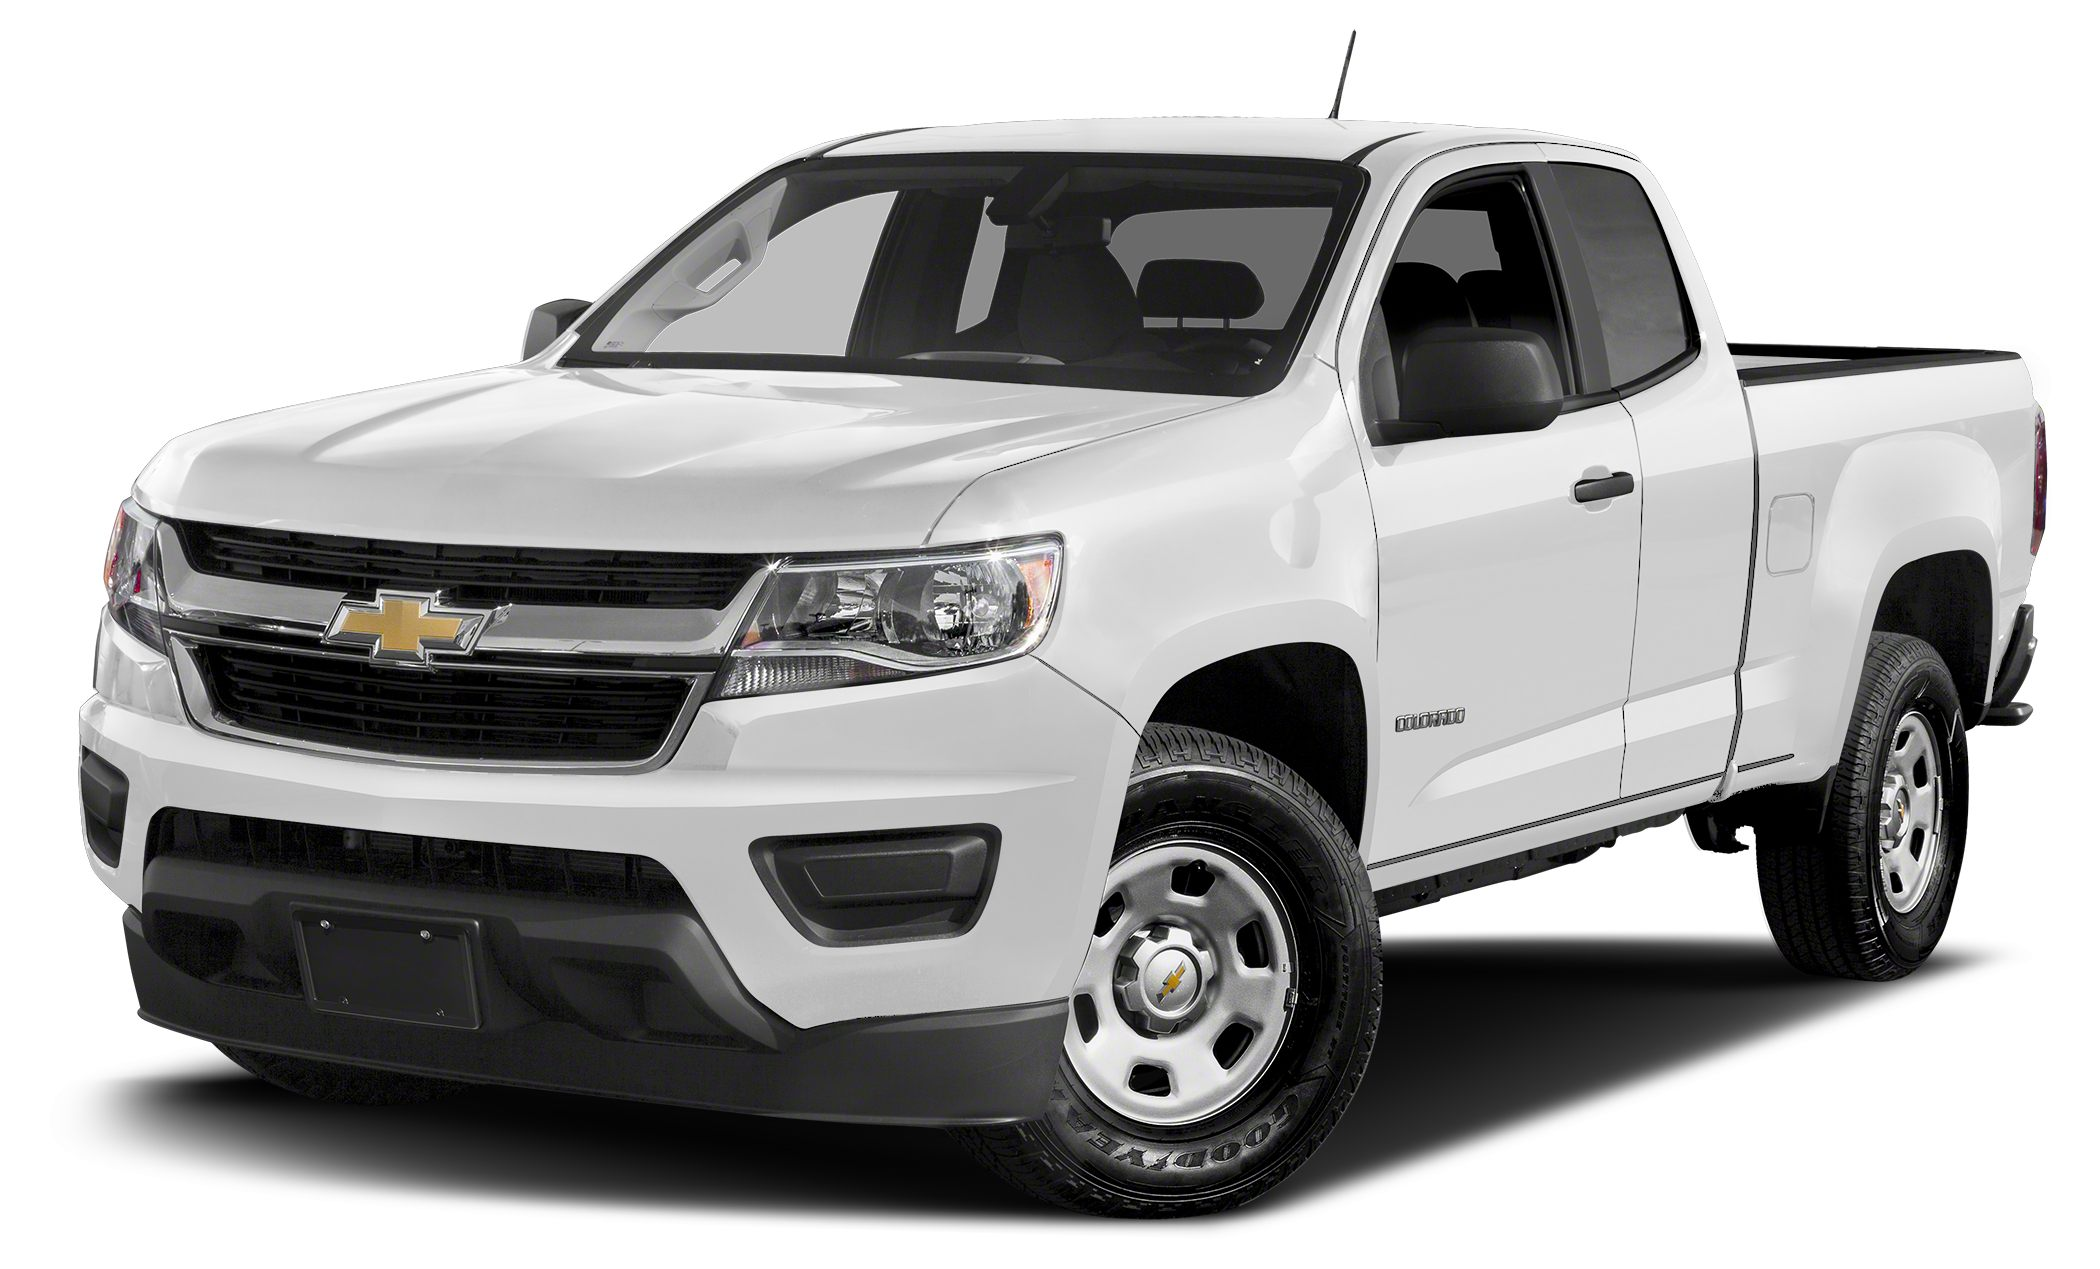 2017 Chevrolet Colorado WT Miles 6Color Summit White Stock 176164 VIN 1GCHSBEA4H1214635